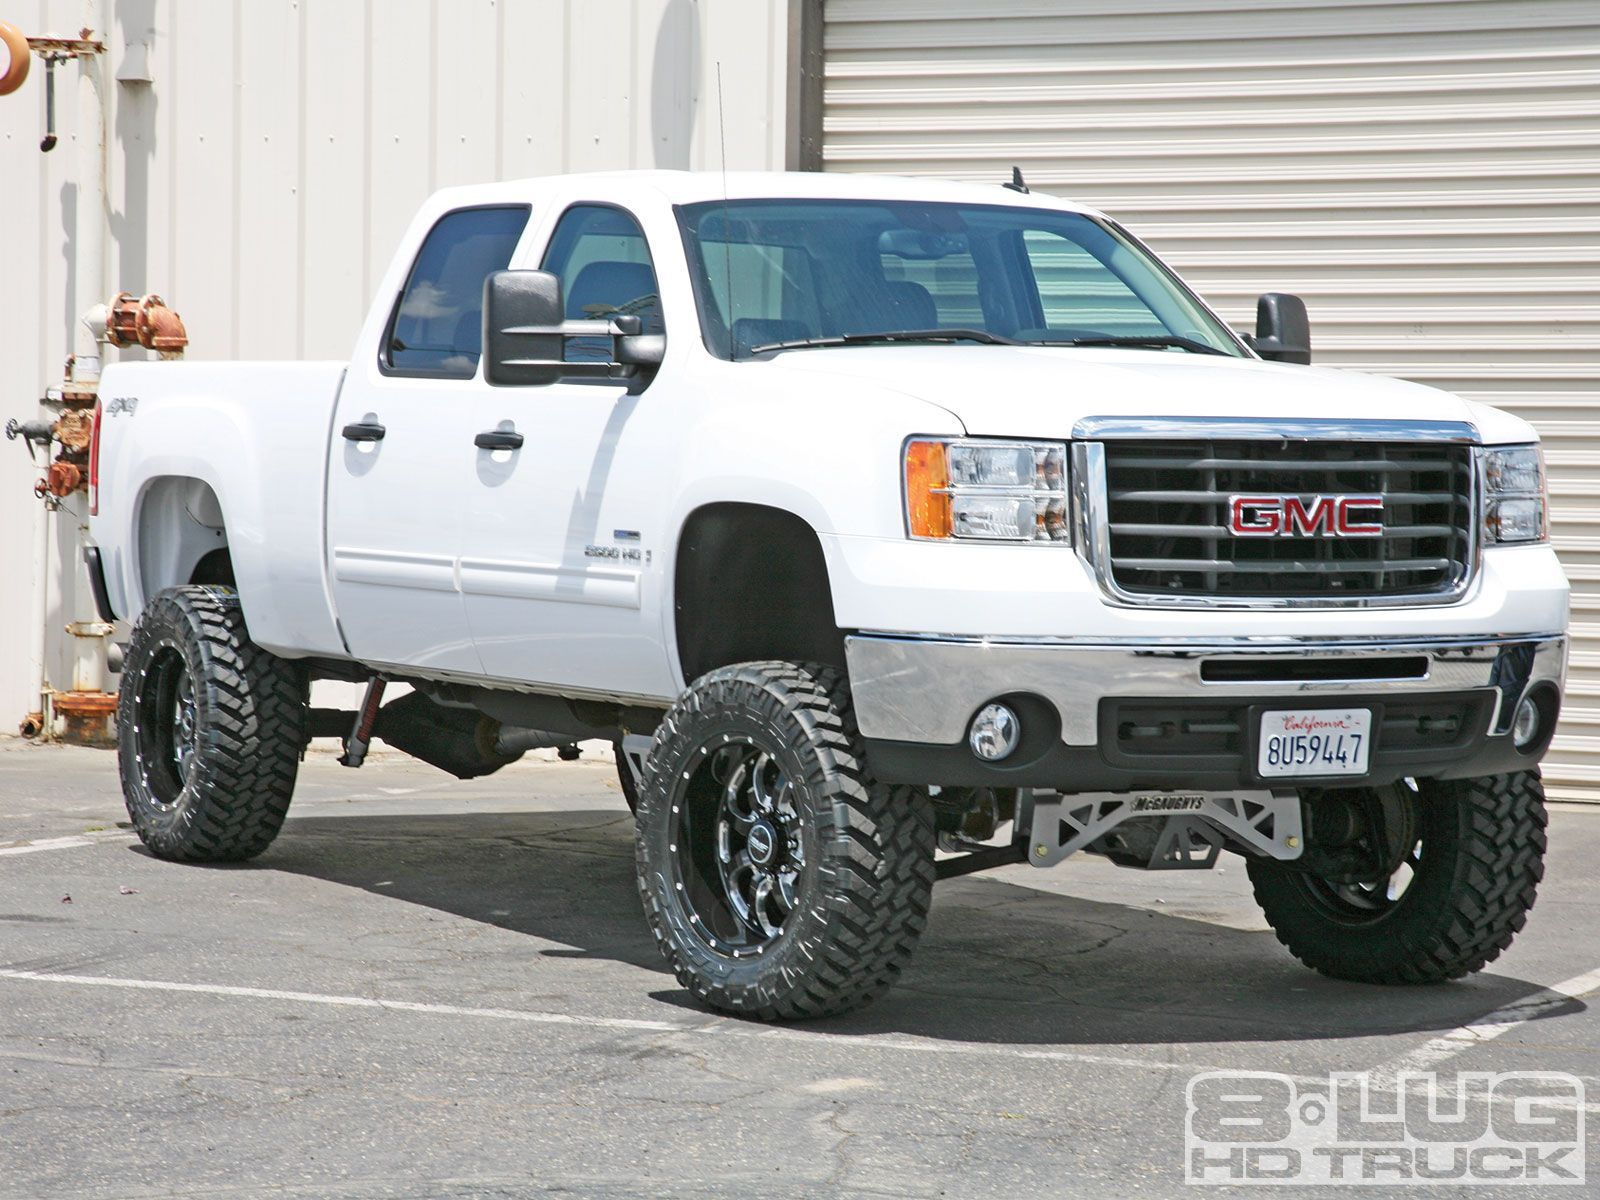 2009 Chevy Silverado For Sale In Houston In 2020 2009 Chevy Silverado Chevy Silverado For Sale